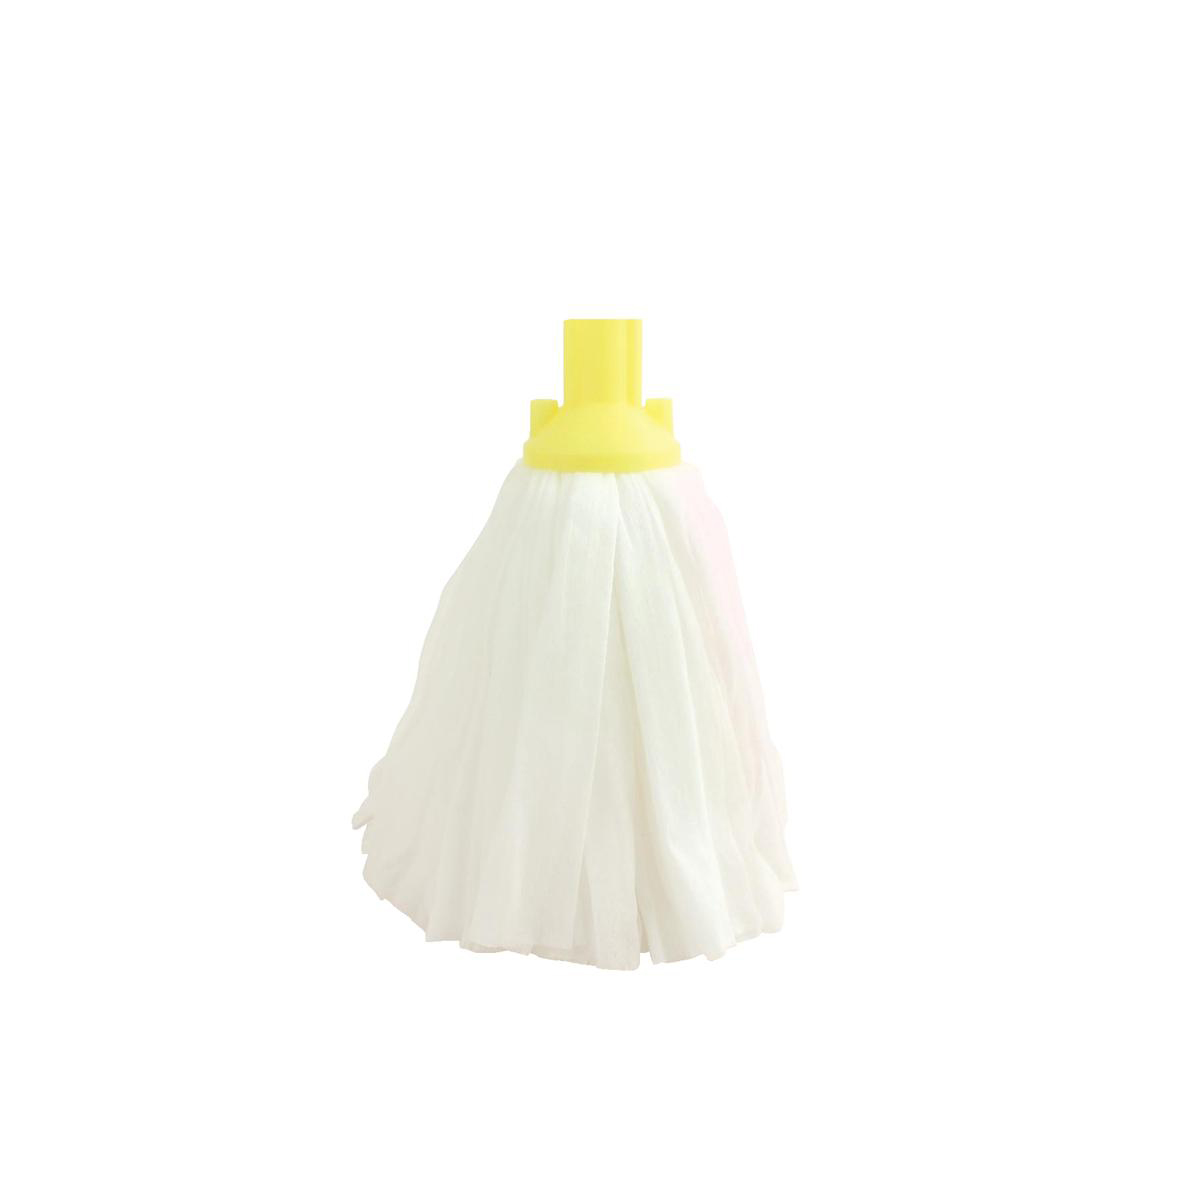 Image for Bentley Disposable Socket Mop Head 120g Yellow Ref SPC/DSM120/Y